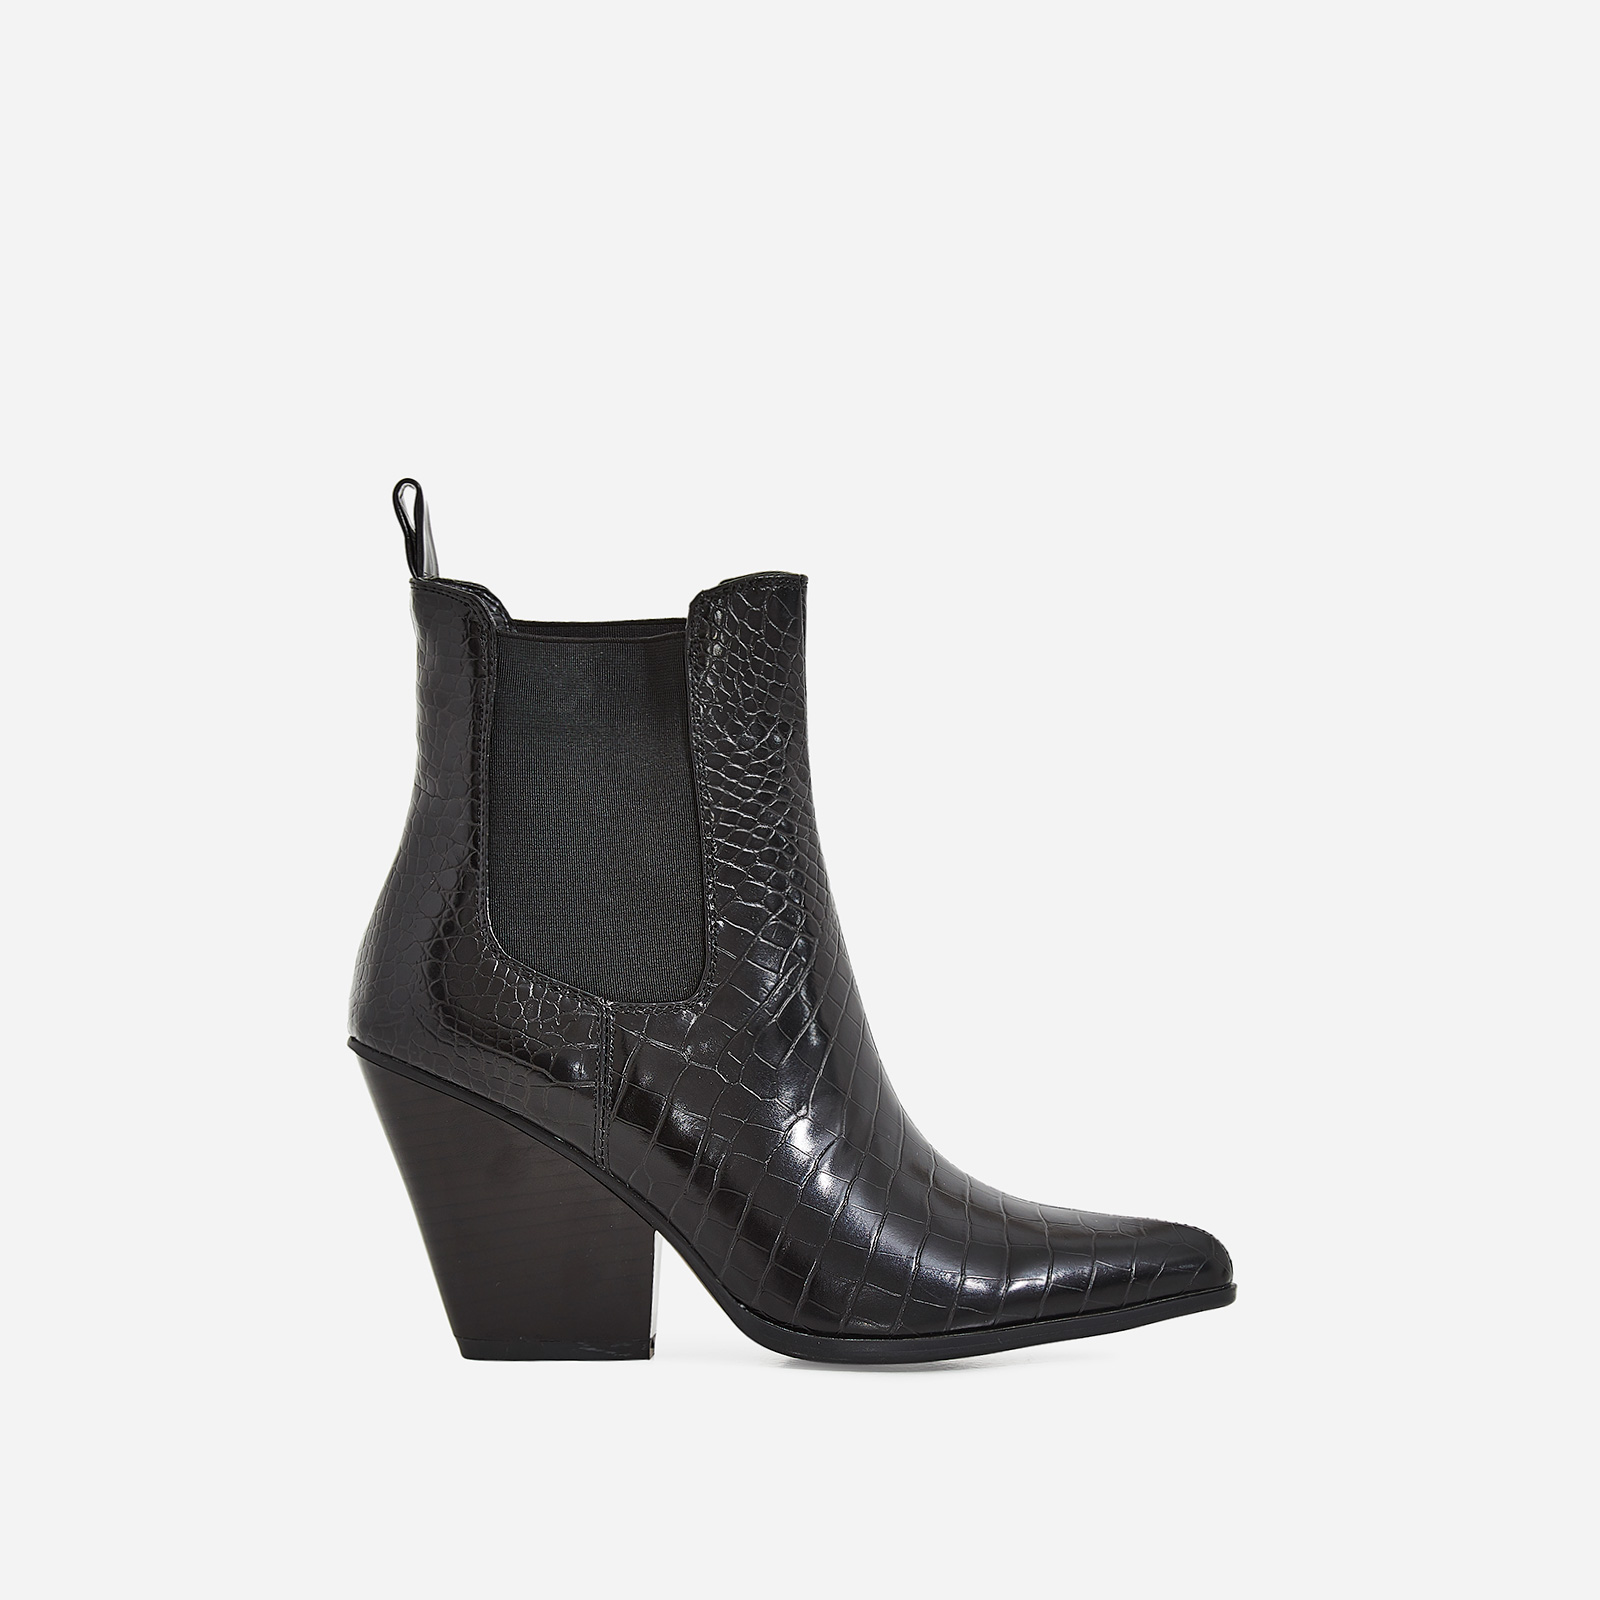 Camille Western Ankle Boot In Black Croc Print Faux Leather